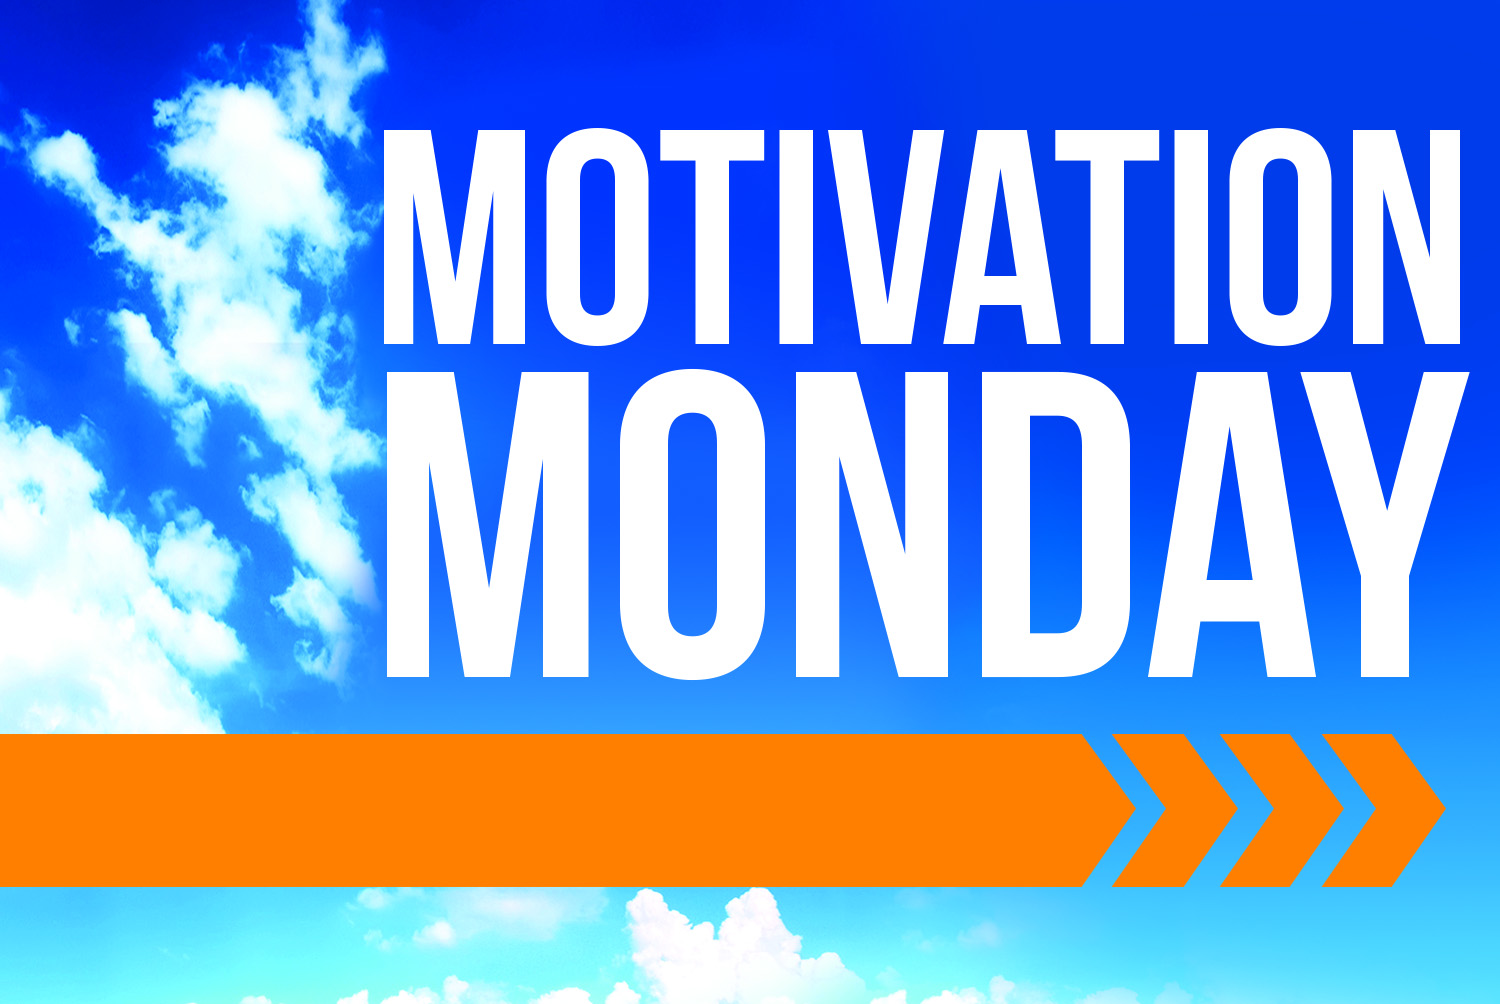 Monday Metavators: Let's Get Motivated